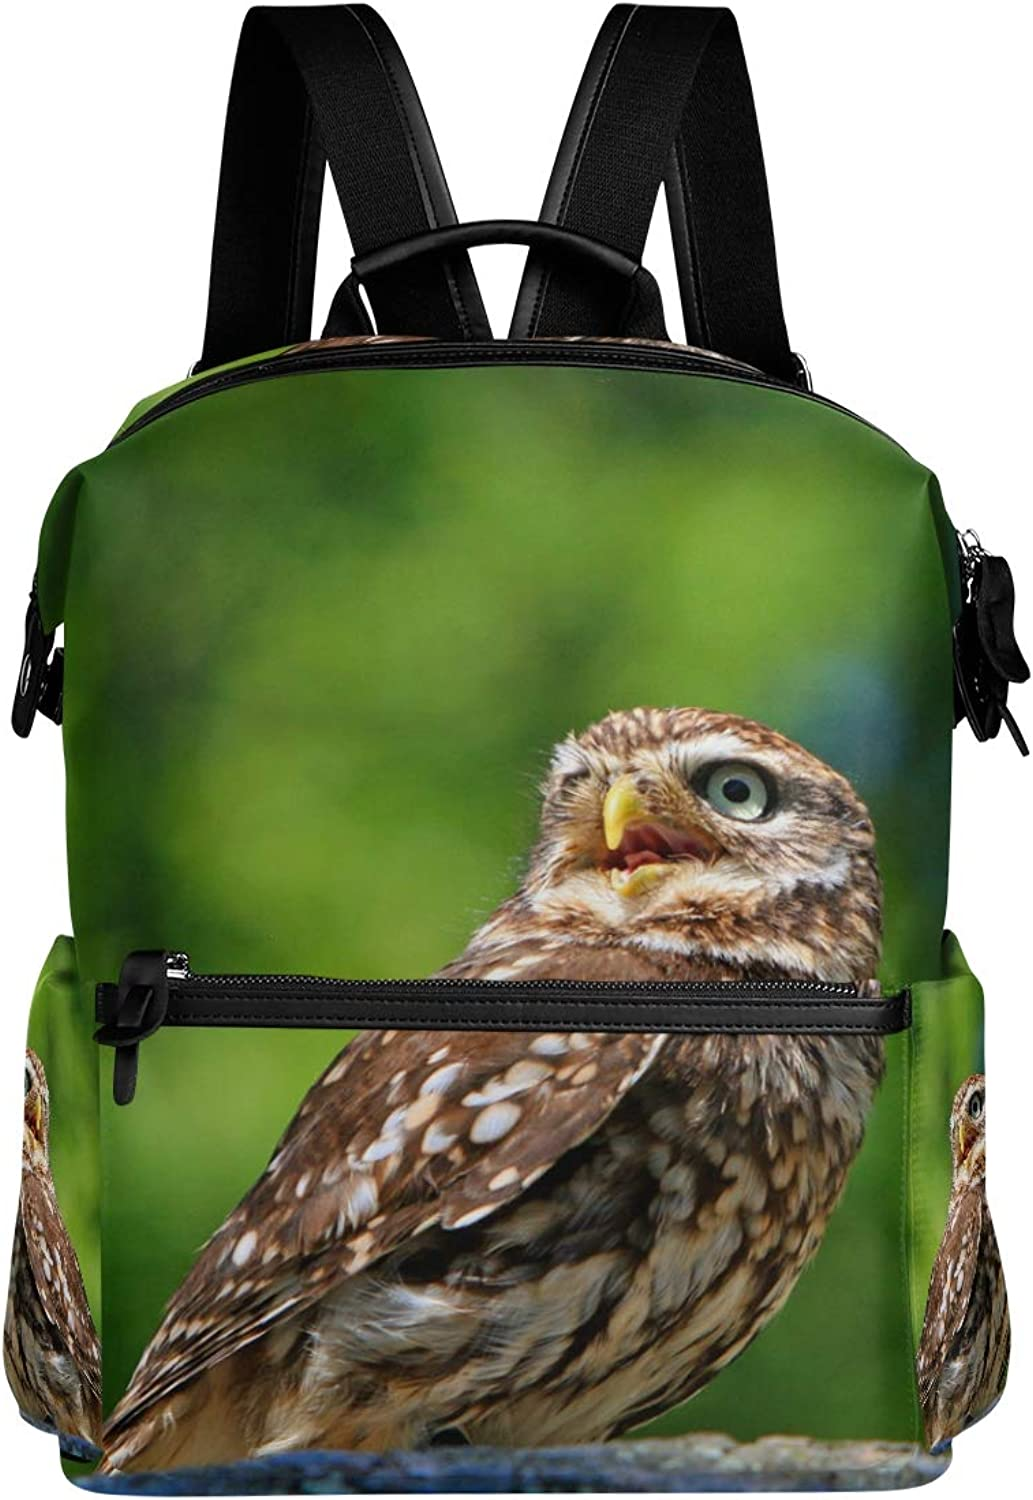 MONTOJ Crying Baby Owl Leather Travel Bag Campus Backpack